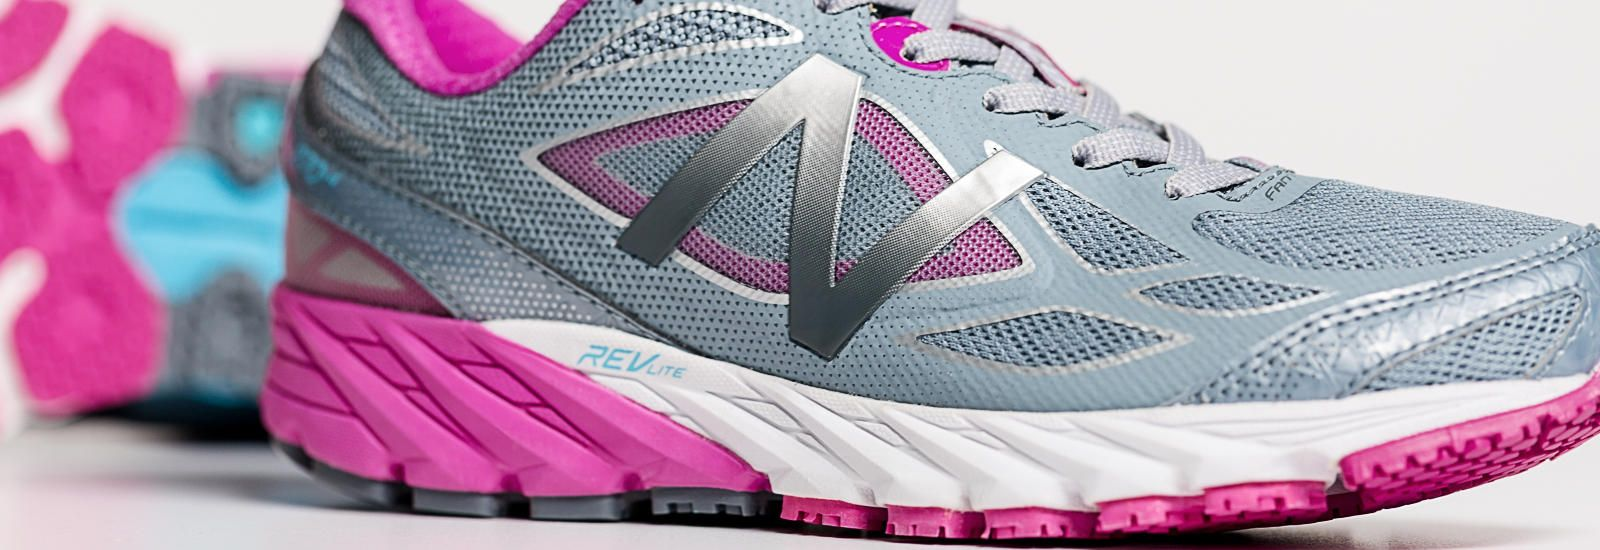 release date: 2ed8b a97b0 New Balance 870v4, $104.99. 8mm drop. Grey with Pink Zing ...